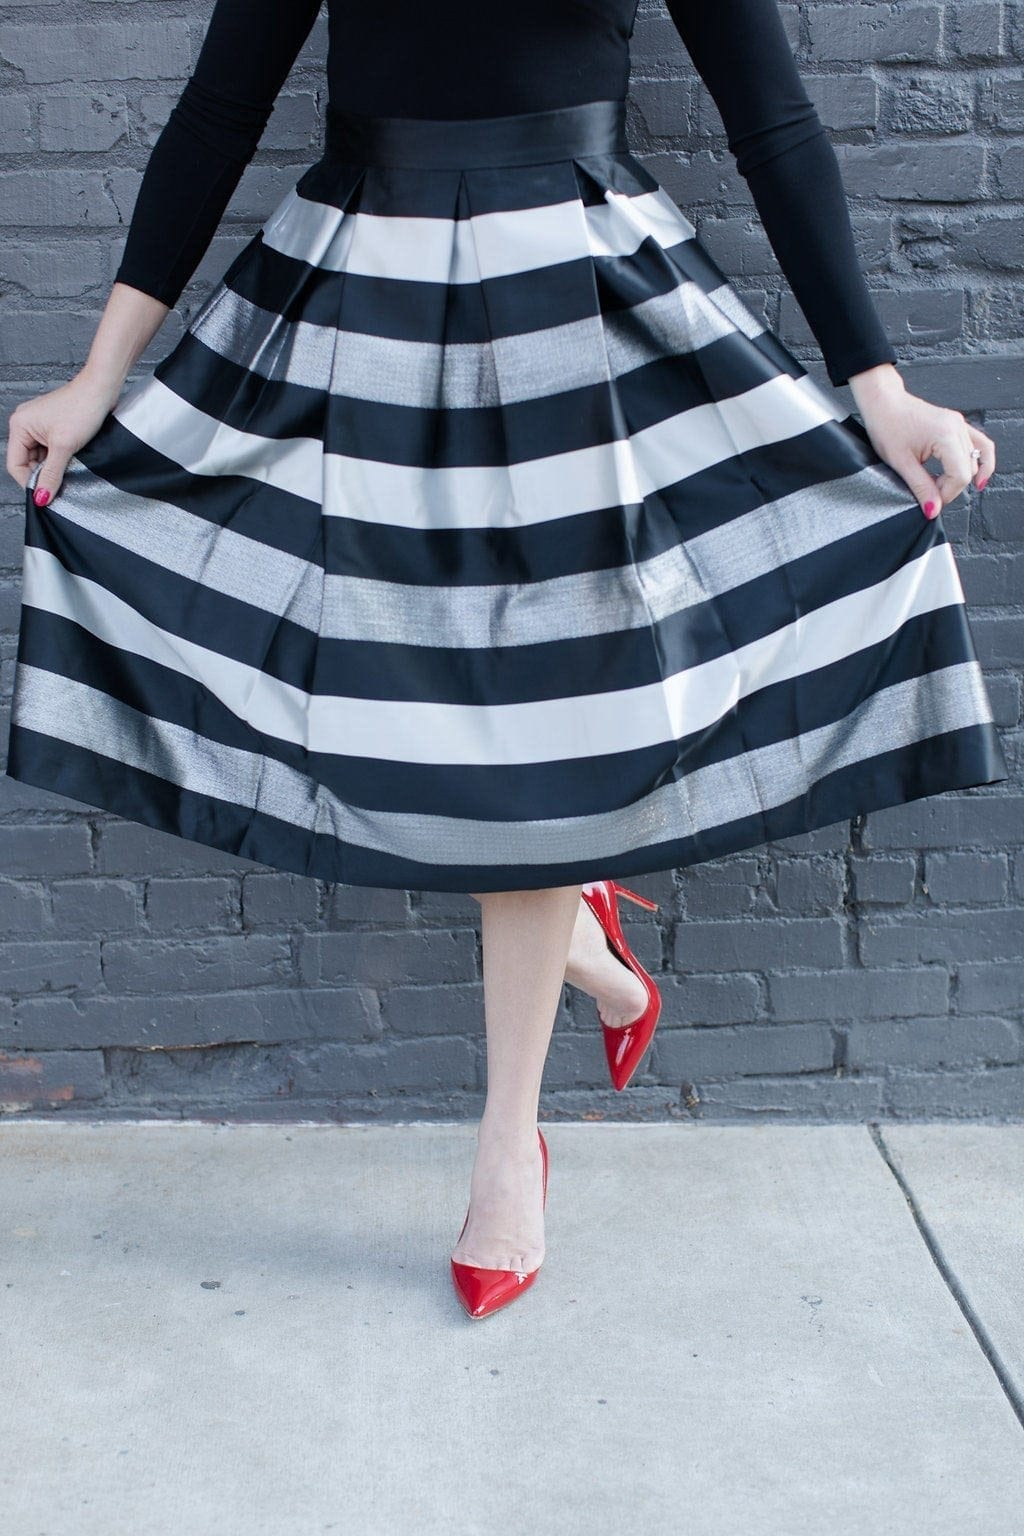 ladylike holiday looks in full skirt in black and silver with red patent leather shoes against gray brick wall